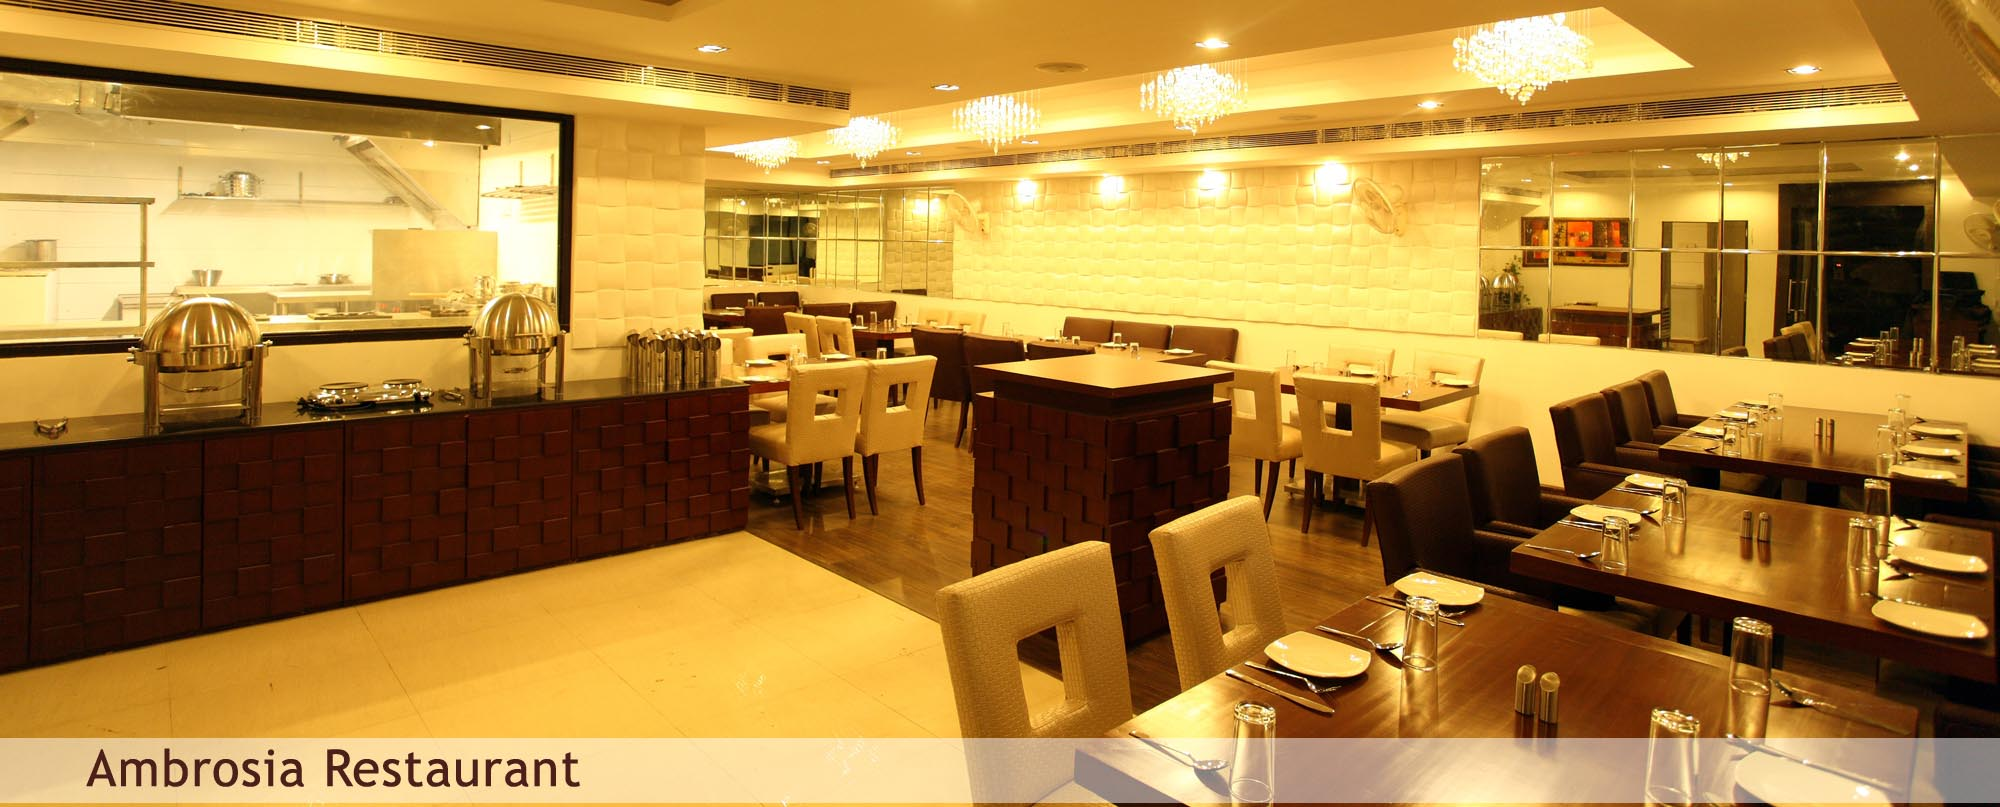 restaurant at Kota